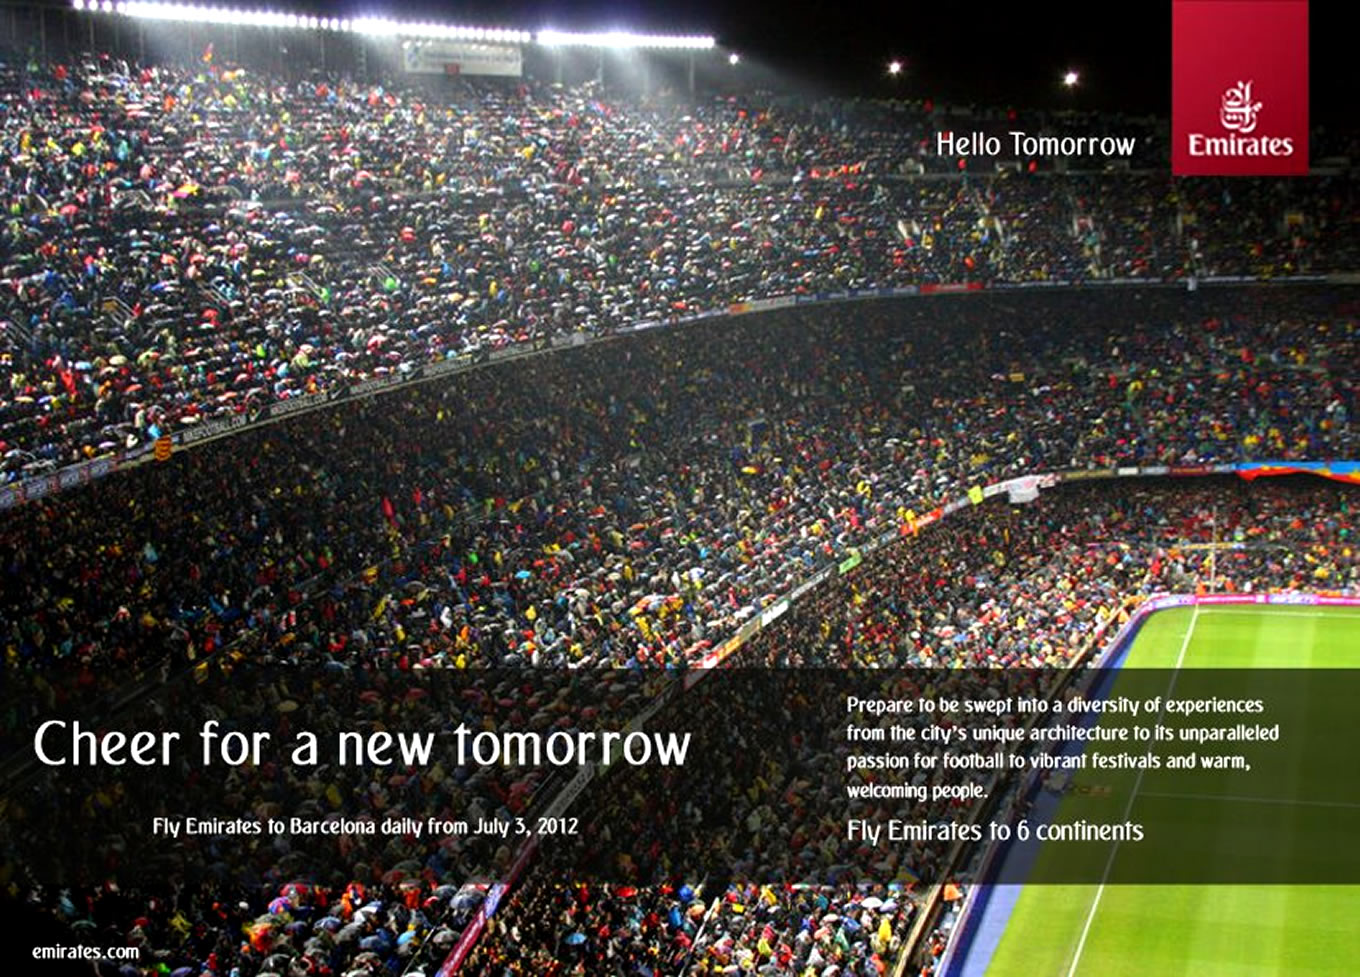 Barcelona Stadium, Hello Tomorrow Marketing Campaign by Emirates Airlines